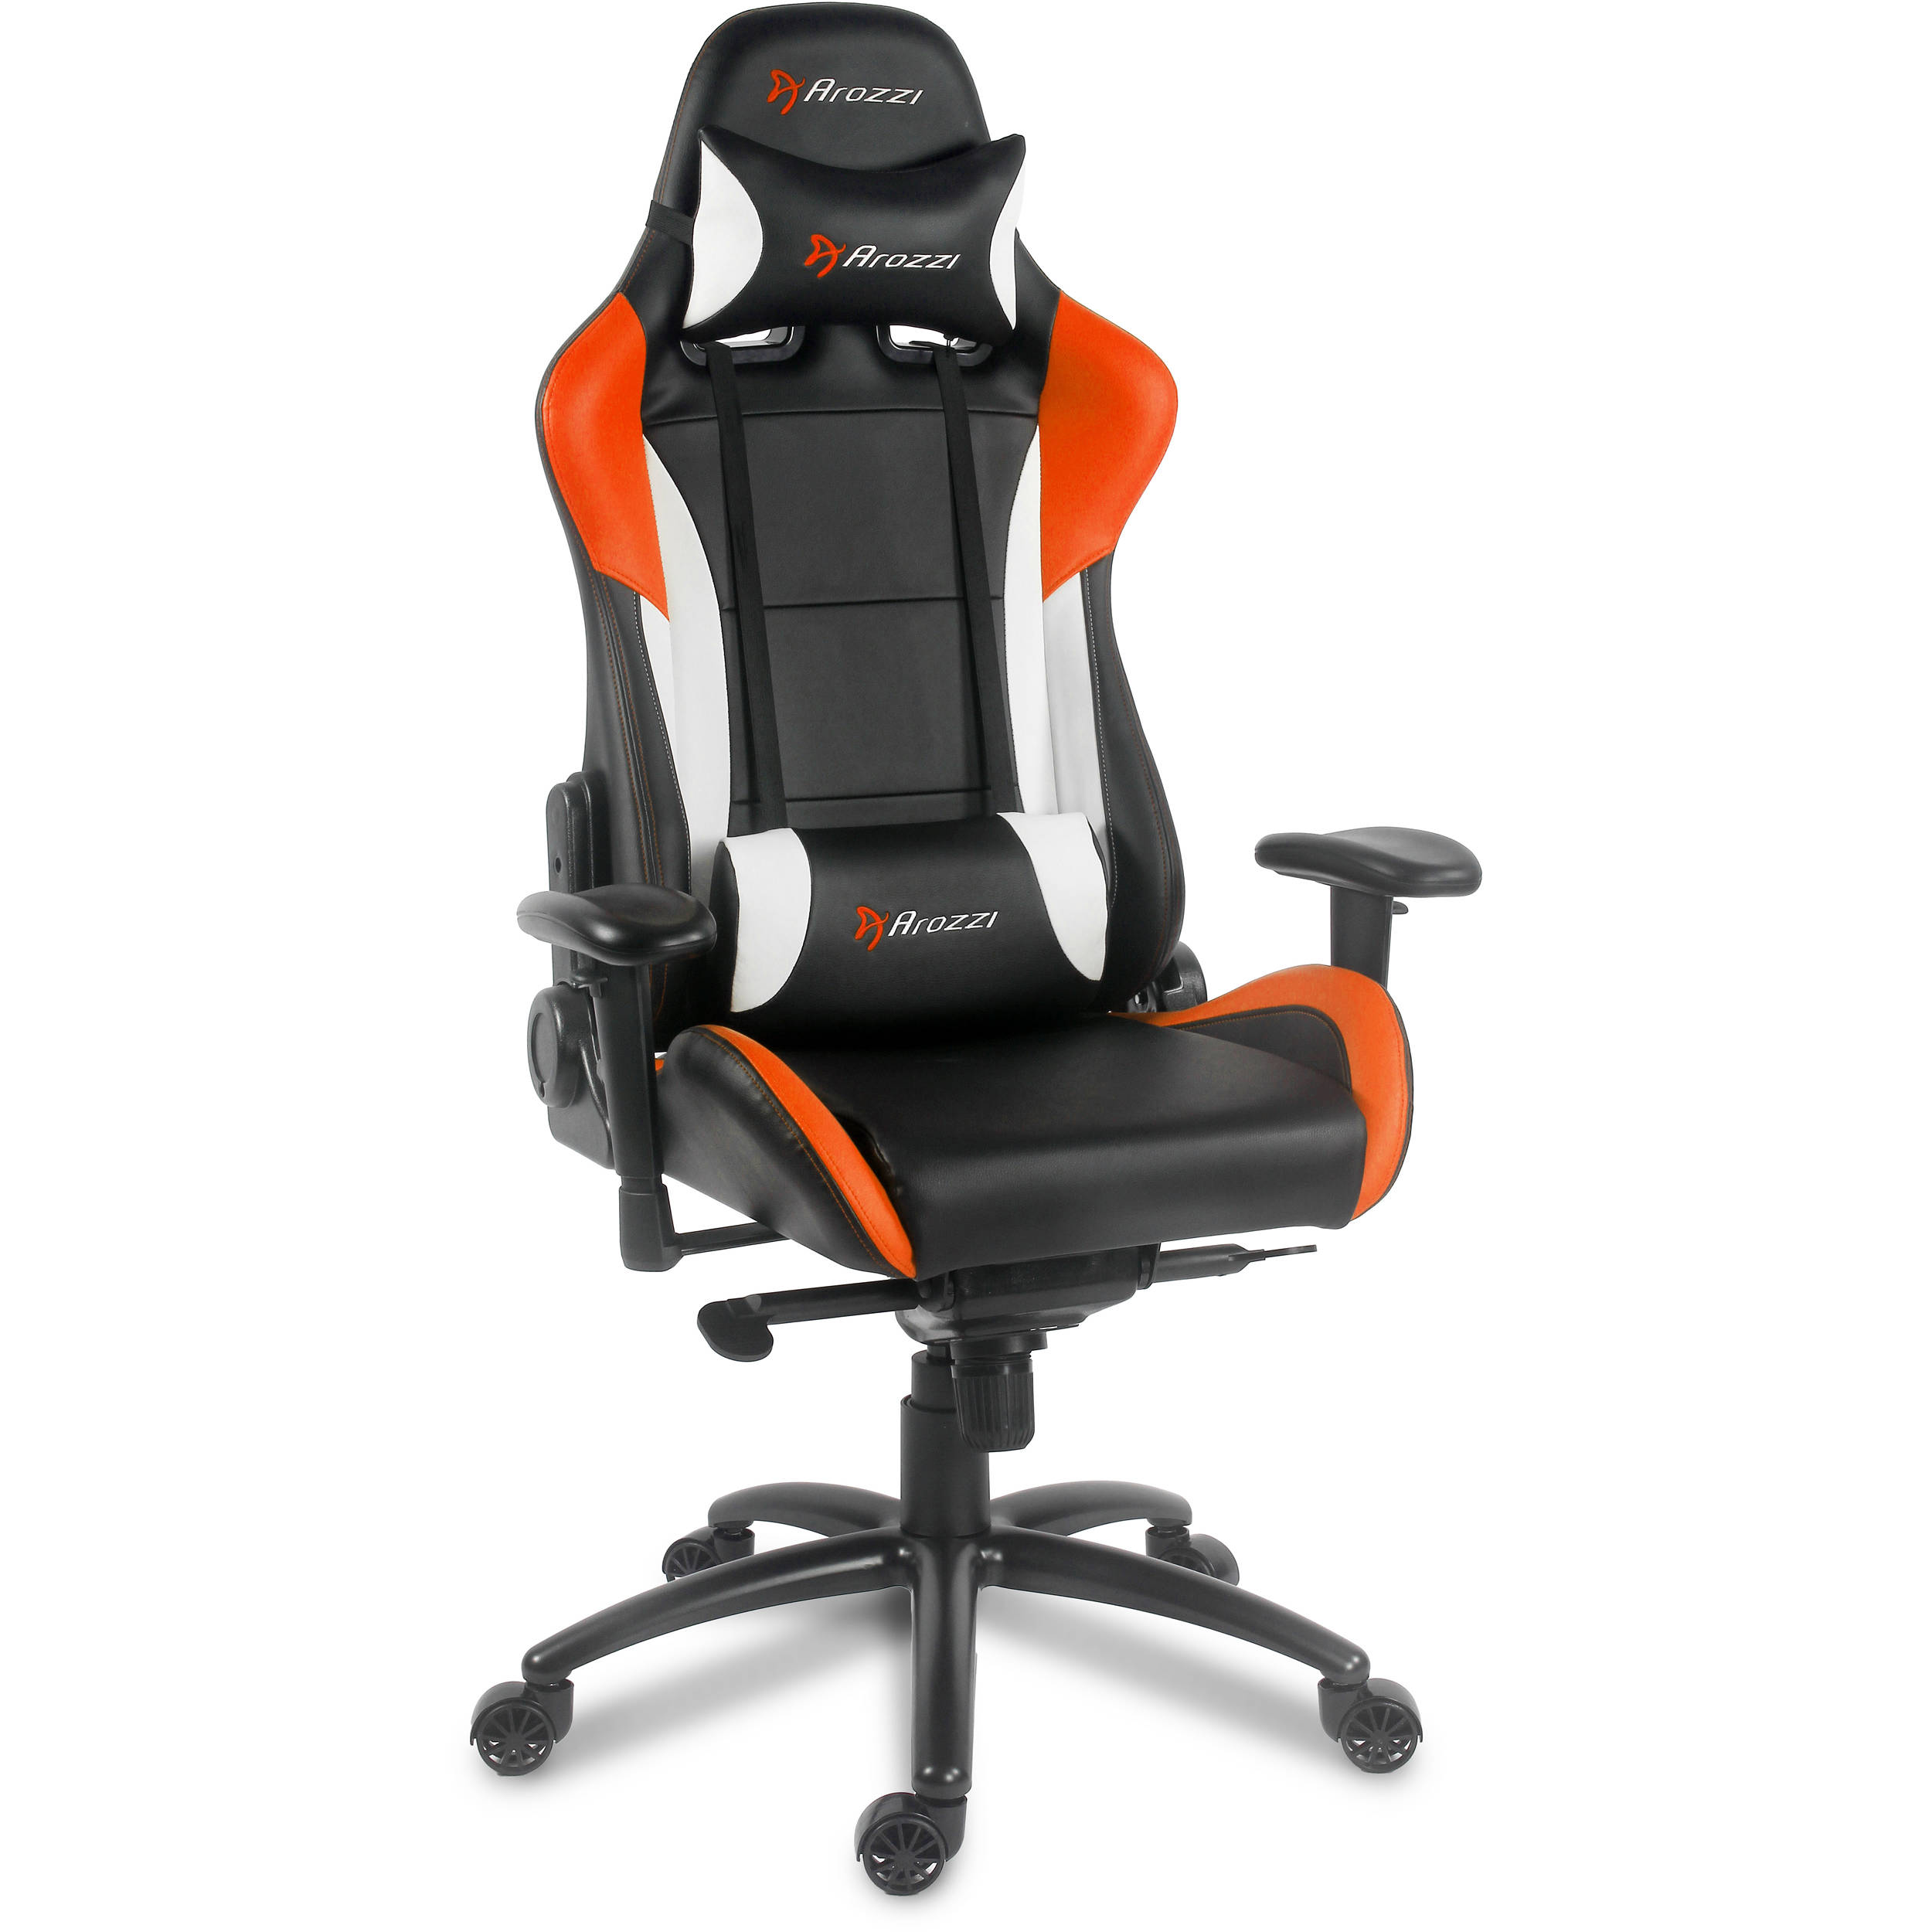 Arozzi Verona Pro Gaming Chair Orange VERONA PRO OR B&H